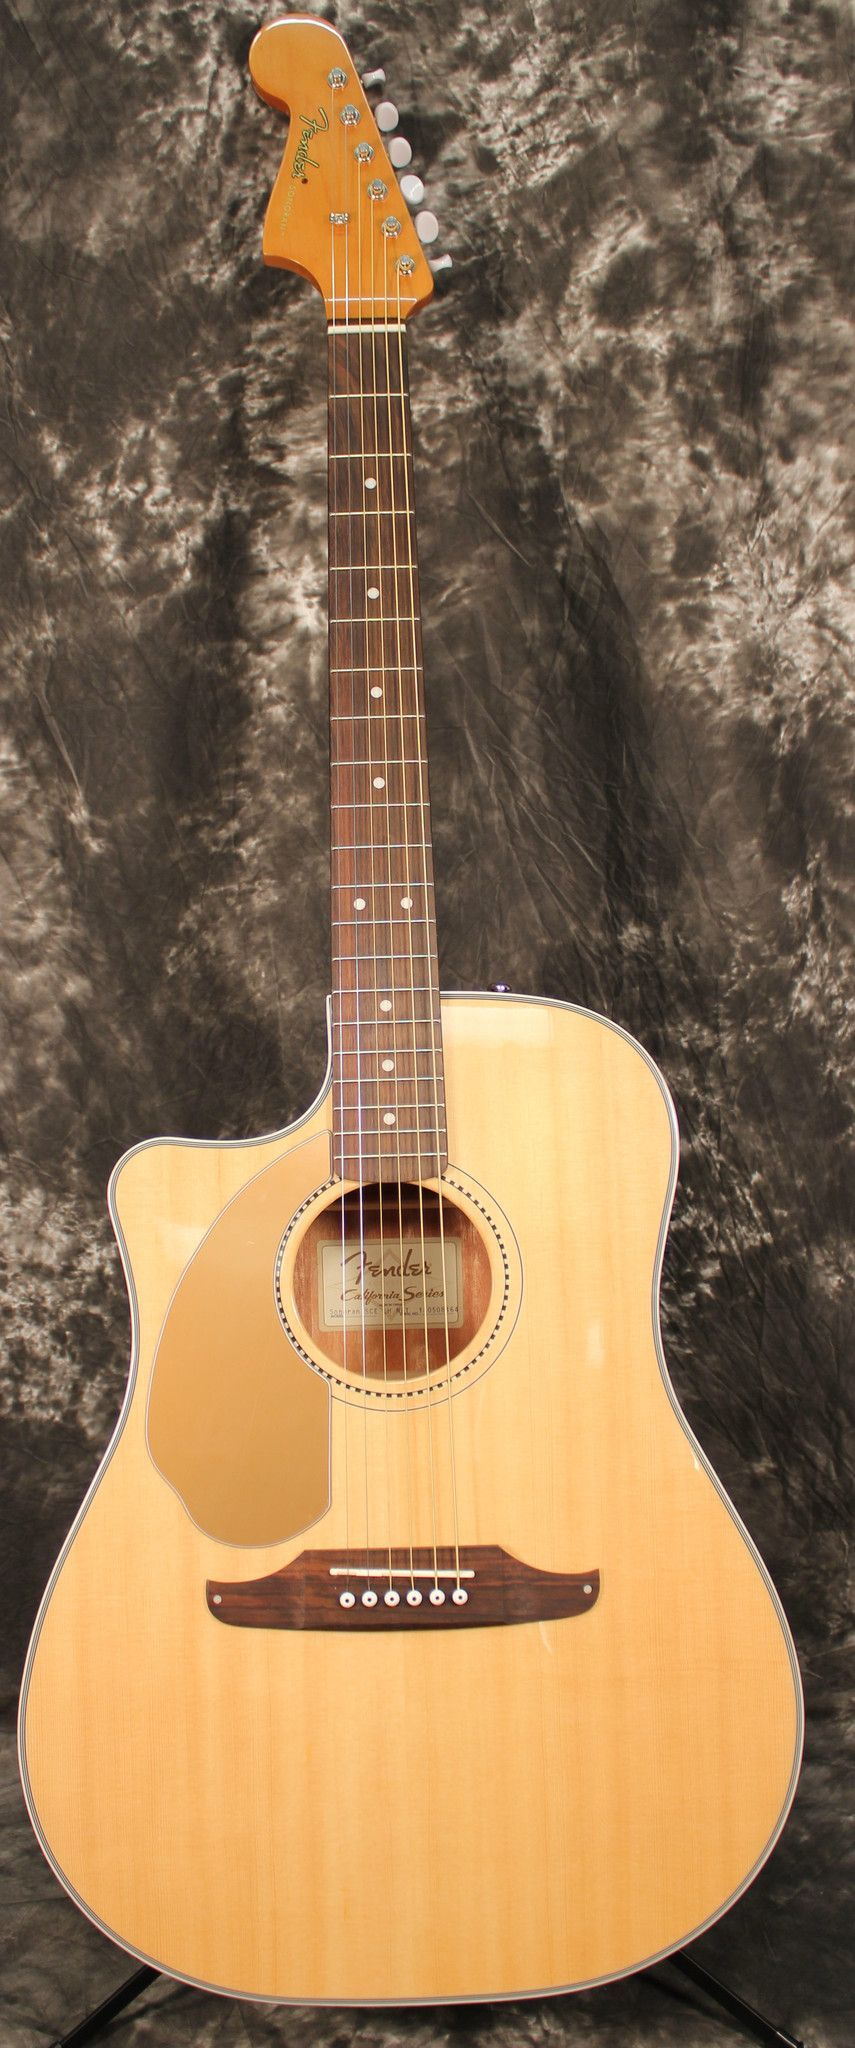 2015 Fender Sonoran Sce Left Handed Acoustic Guitar Natural Left Handed Acoustic Guitar Acoustic Guitar Acoustic Electric